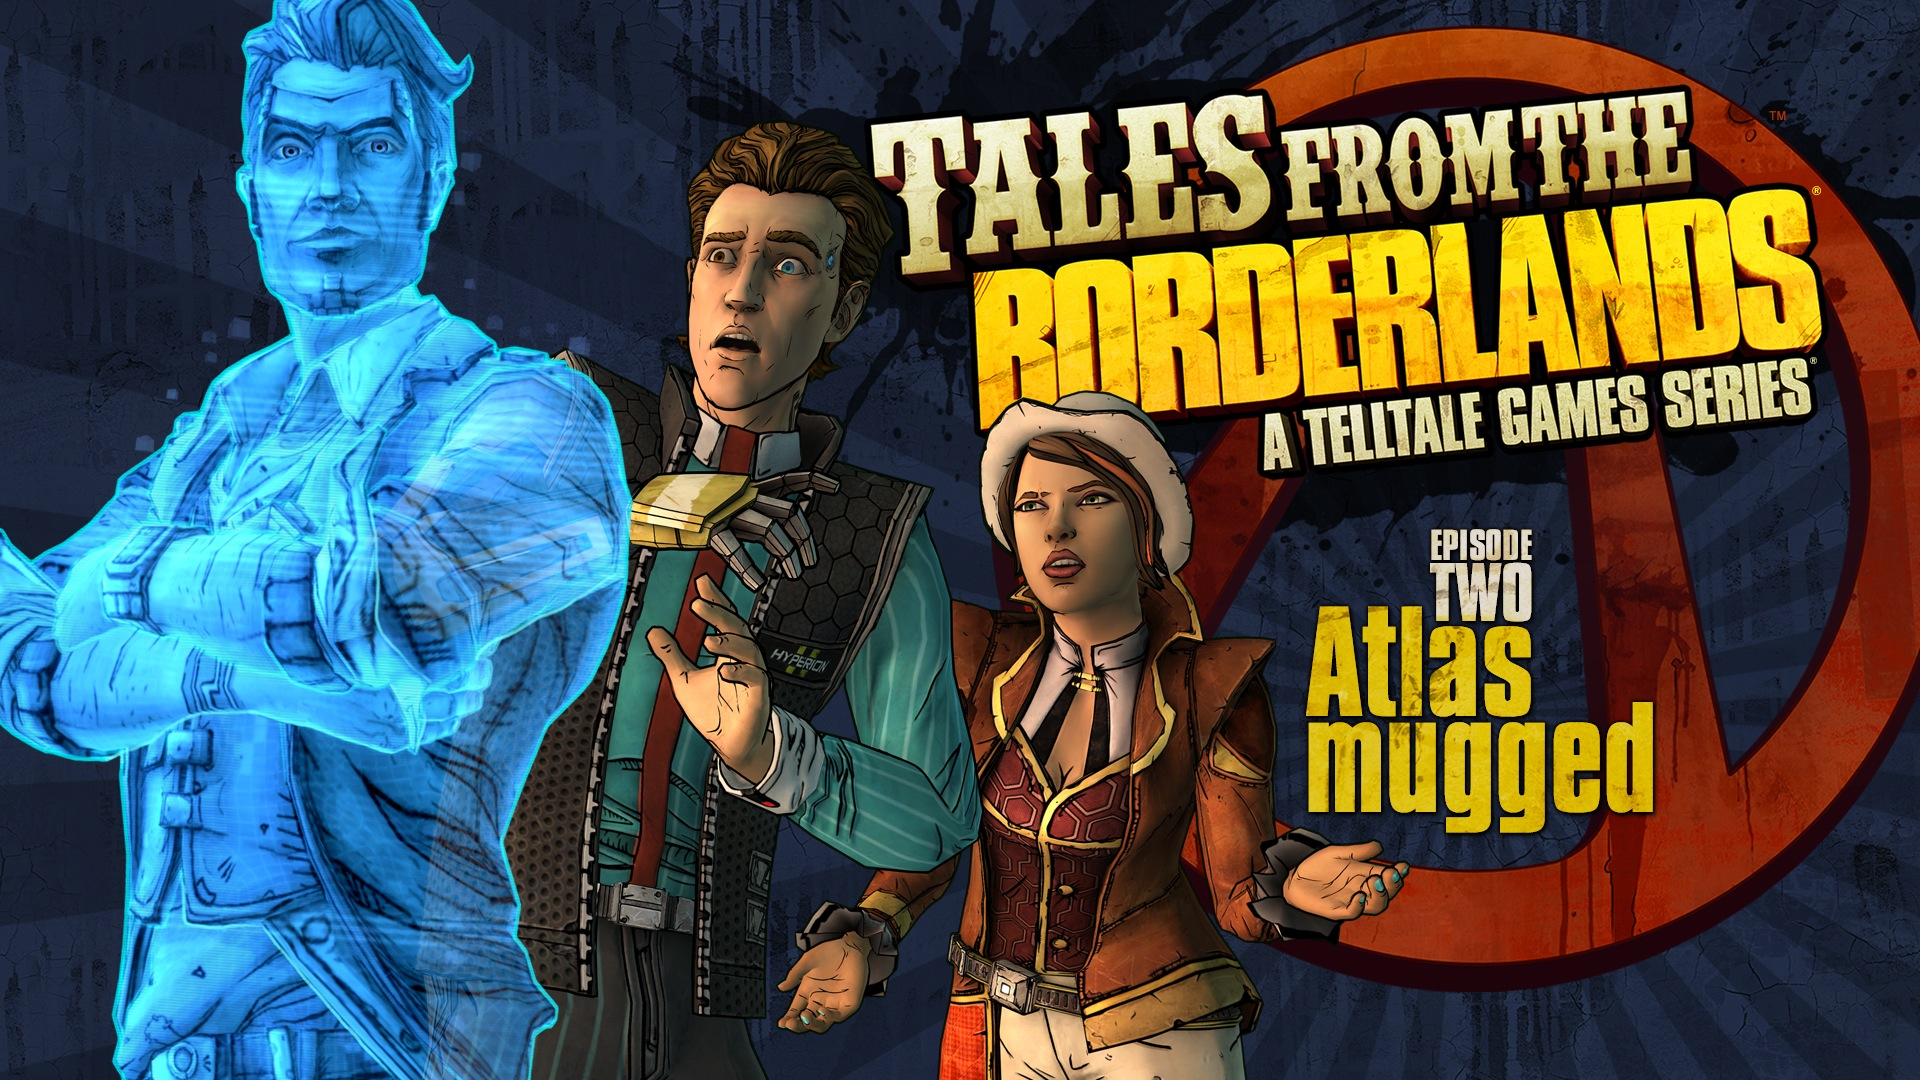 Tales From the Borderlands Episode 2 'Atlas Mugged' Coming Next Week